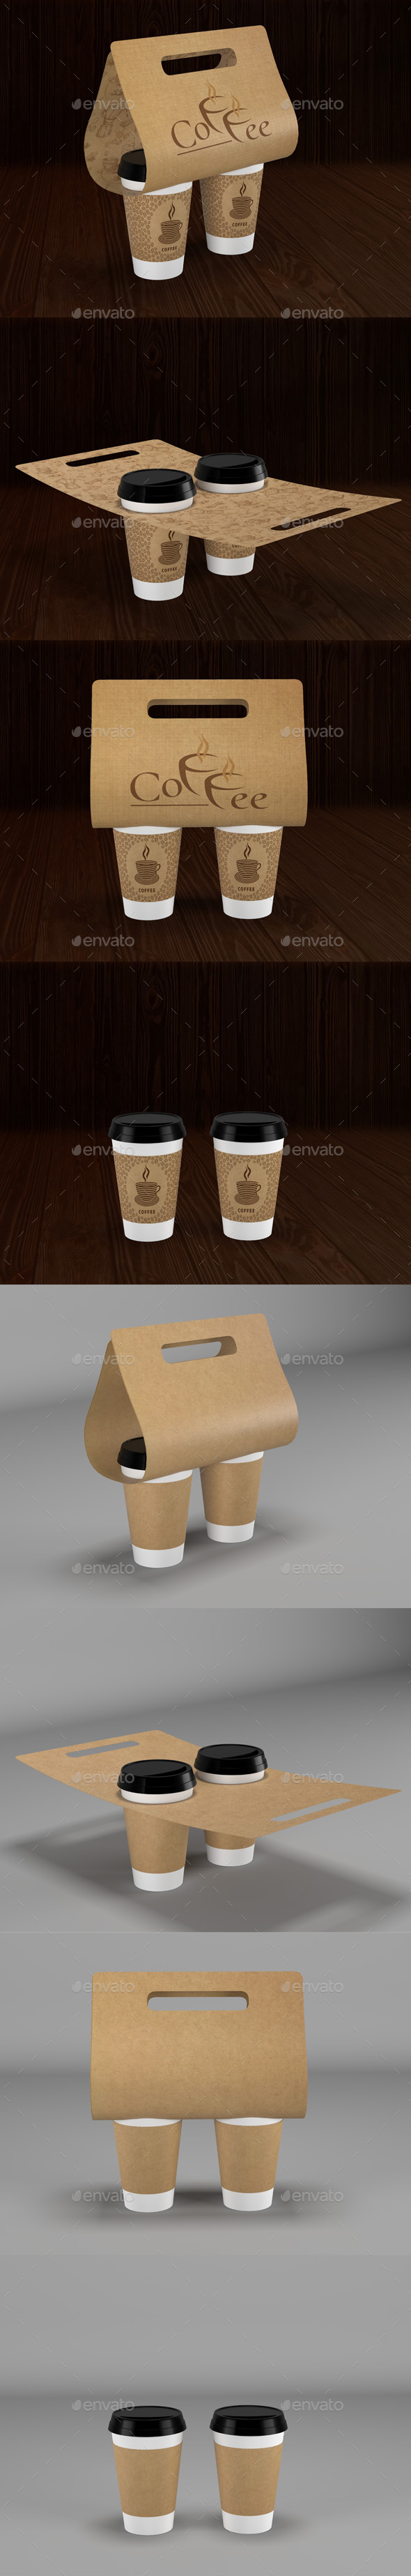 GraphicRiver Coffee Cup 21123697